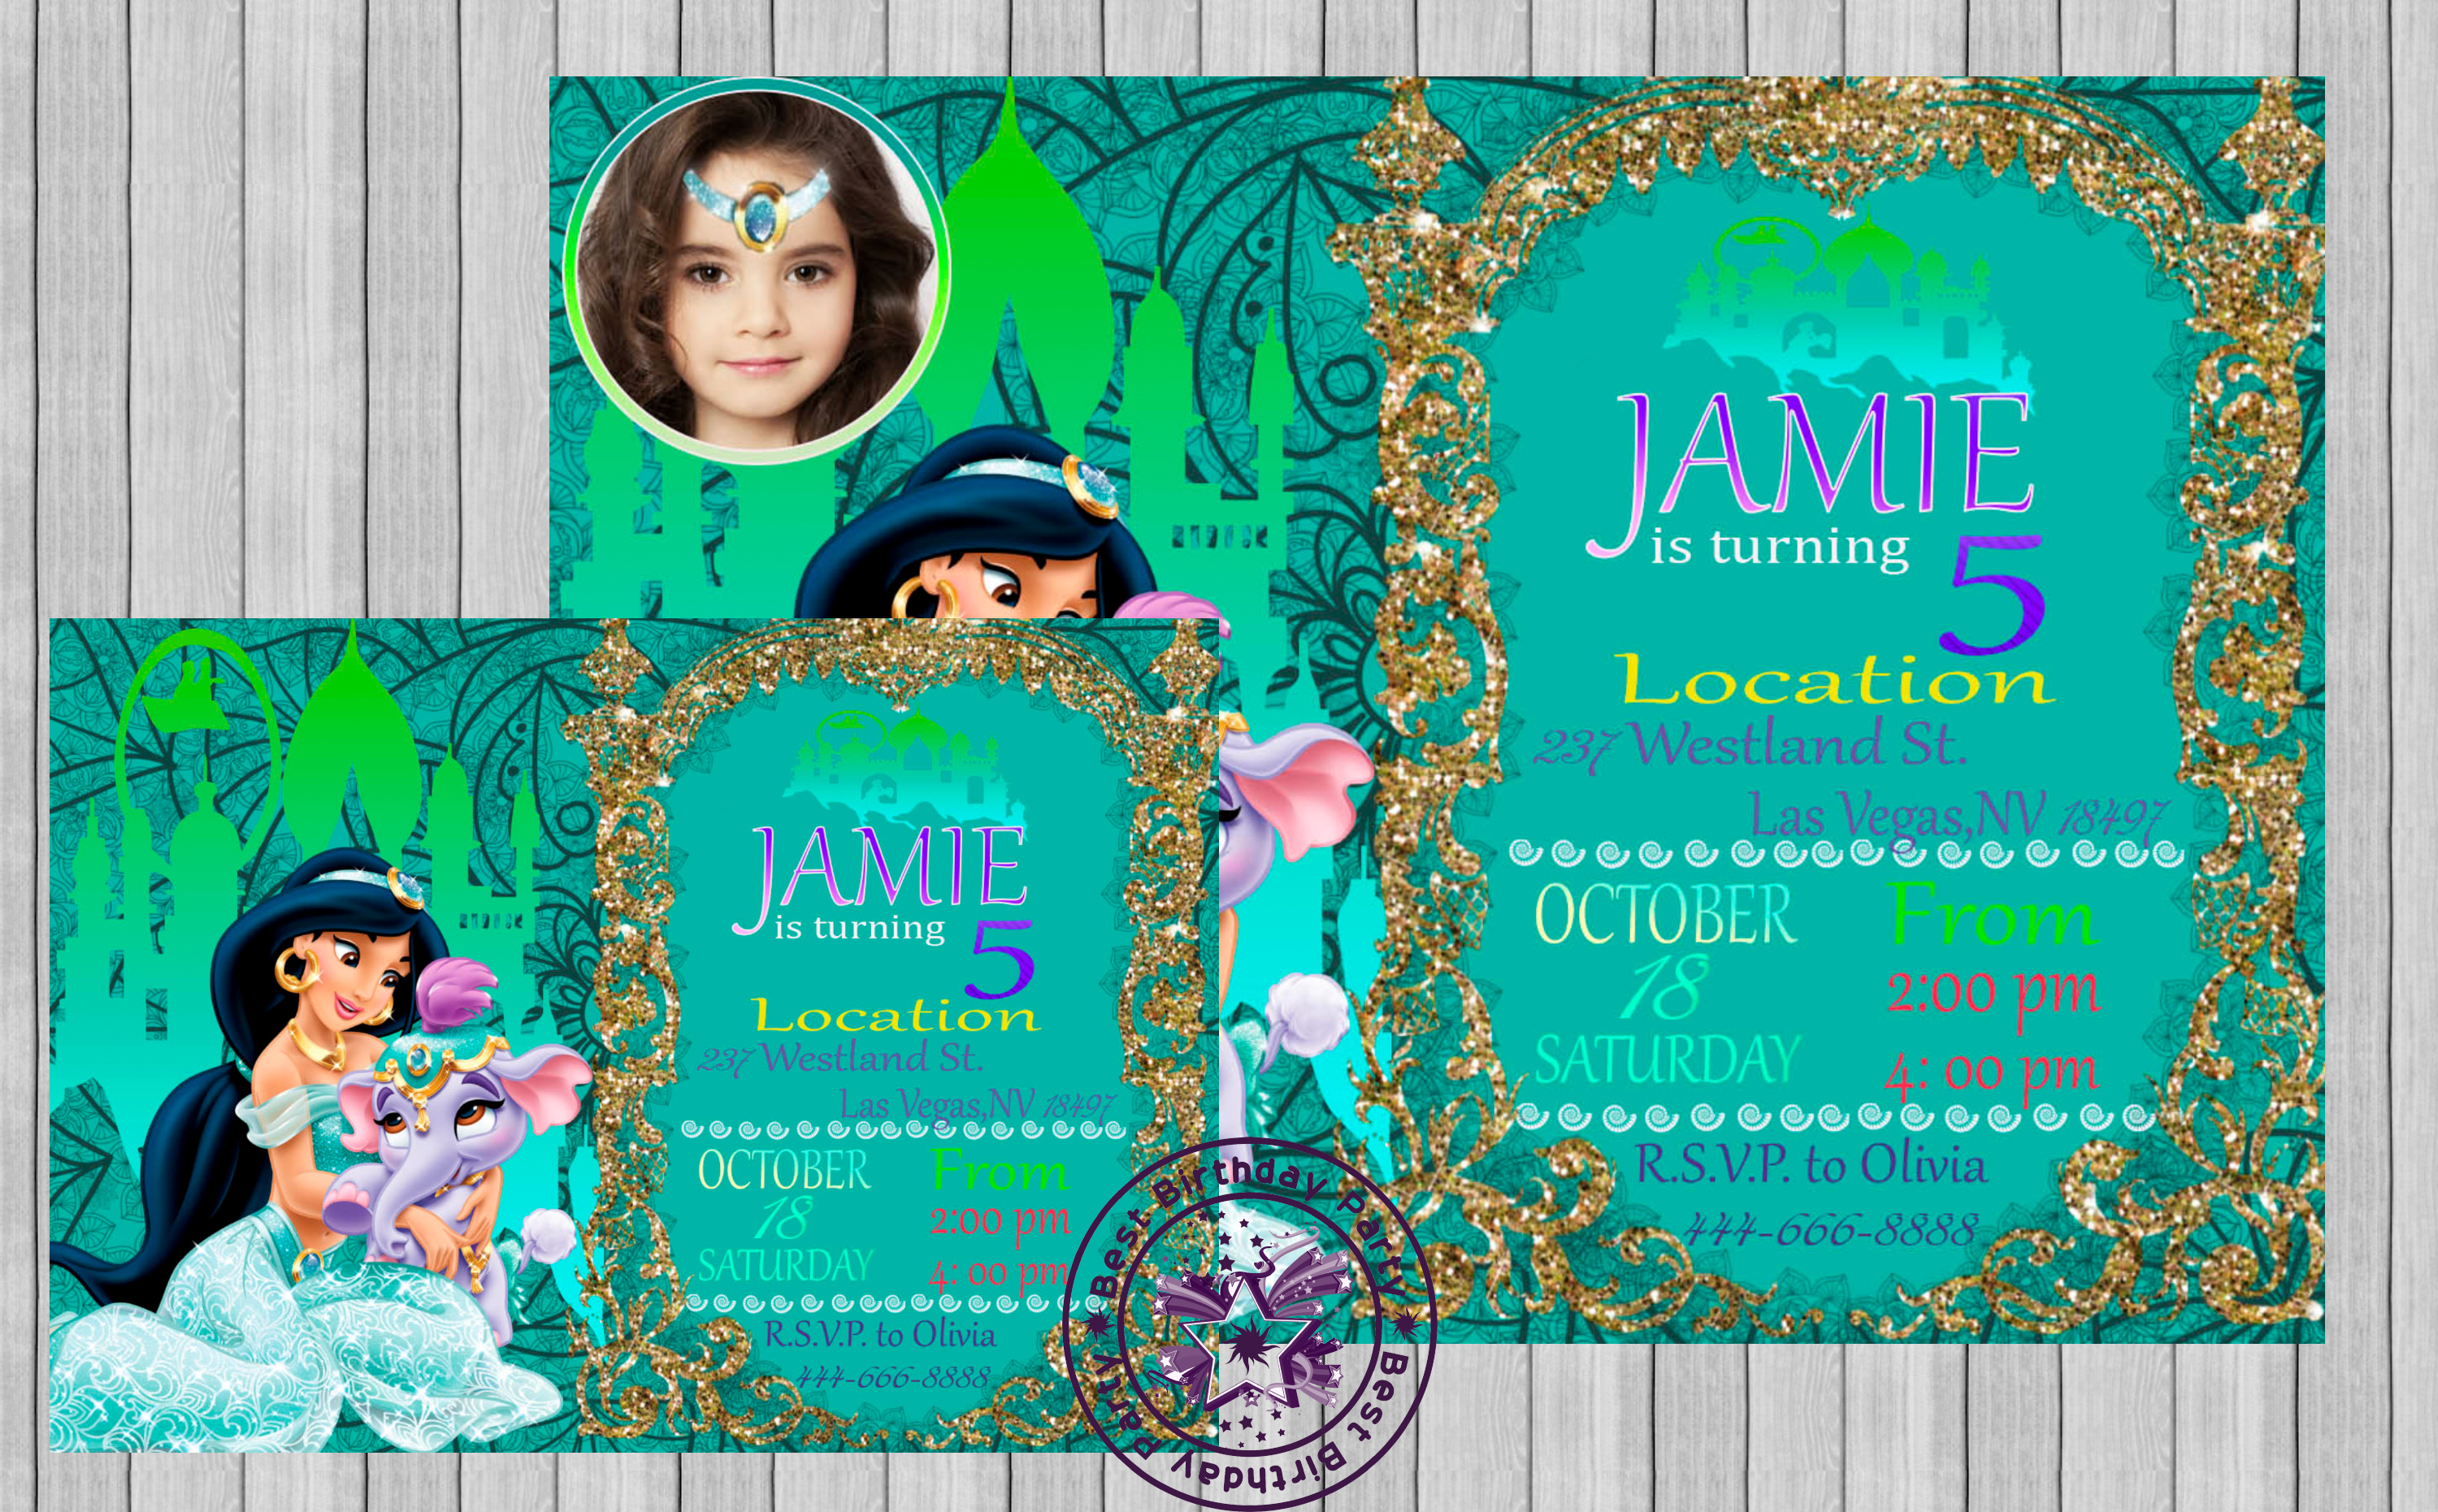 princess jasmine invitation jasmine invitation jasmine princess invitation invitation princess jasmine jasmine invites jasmine birthday